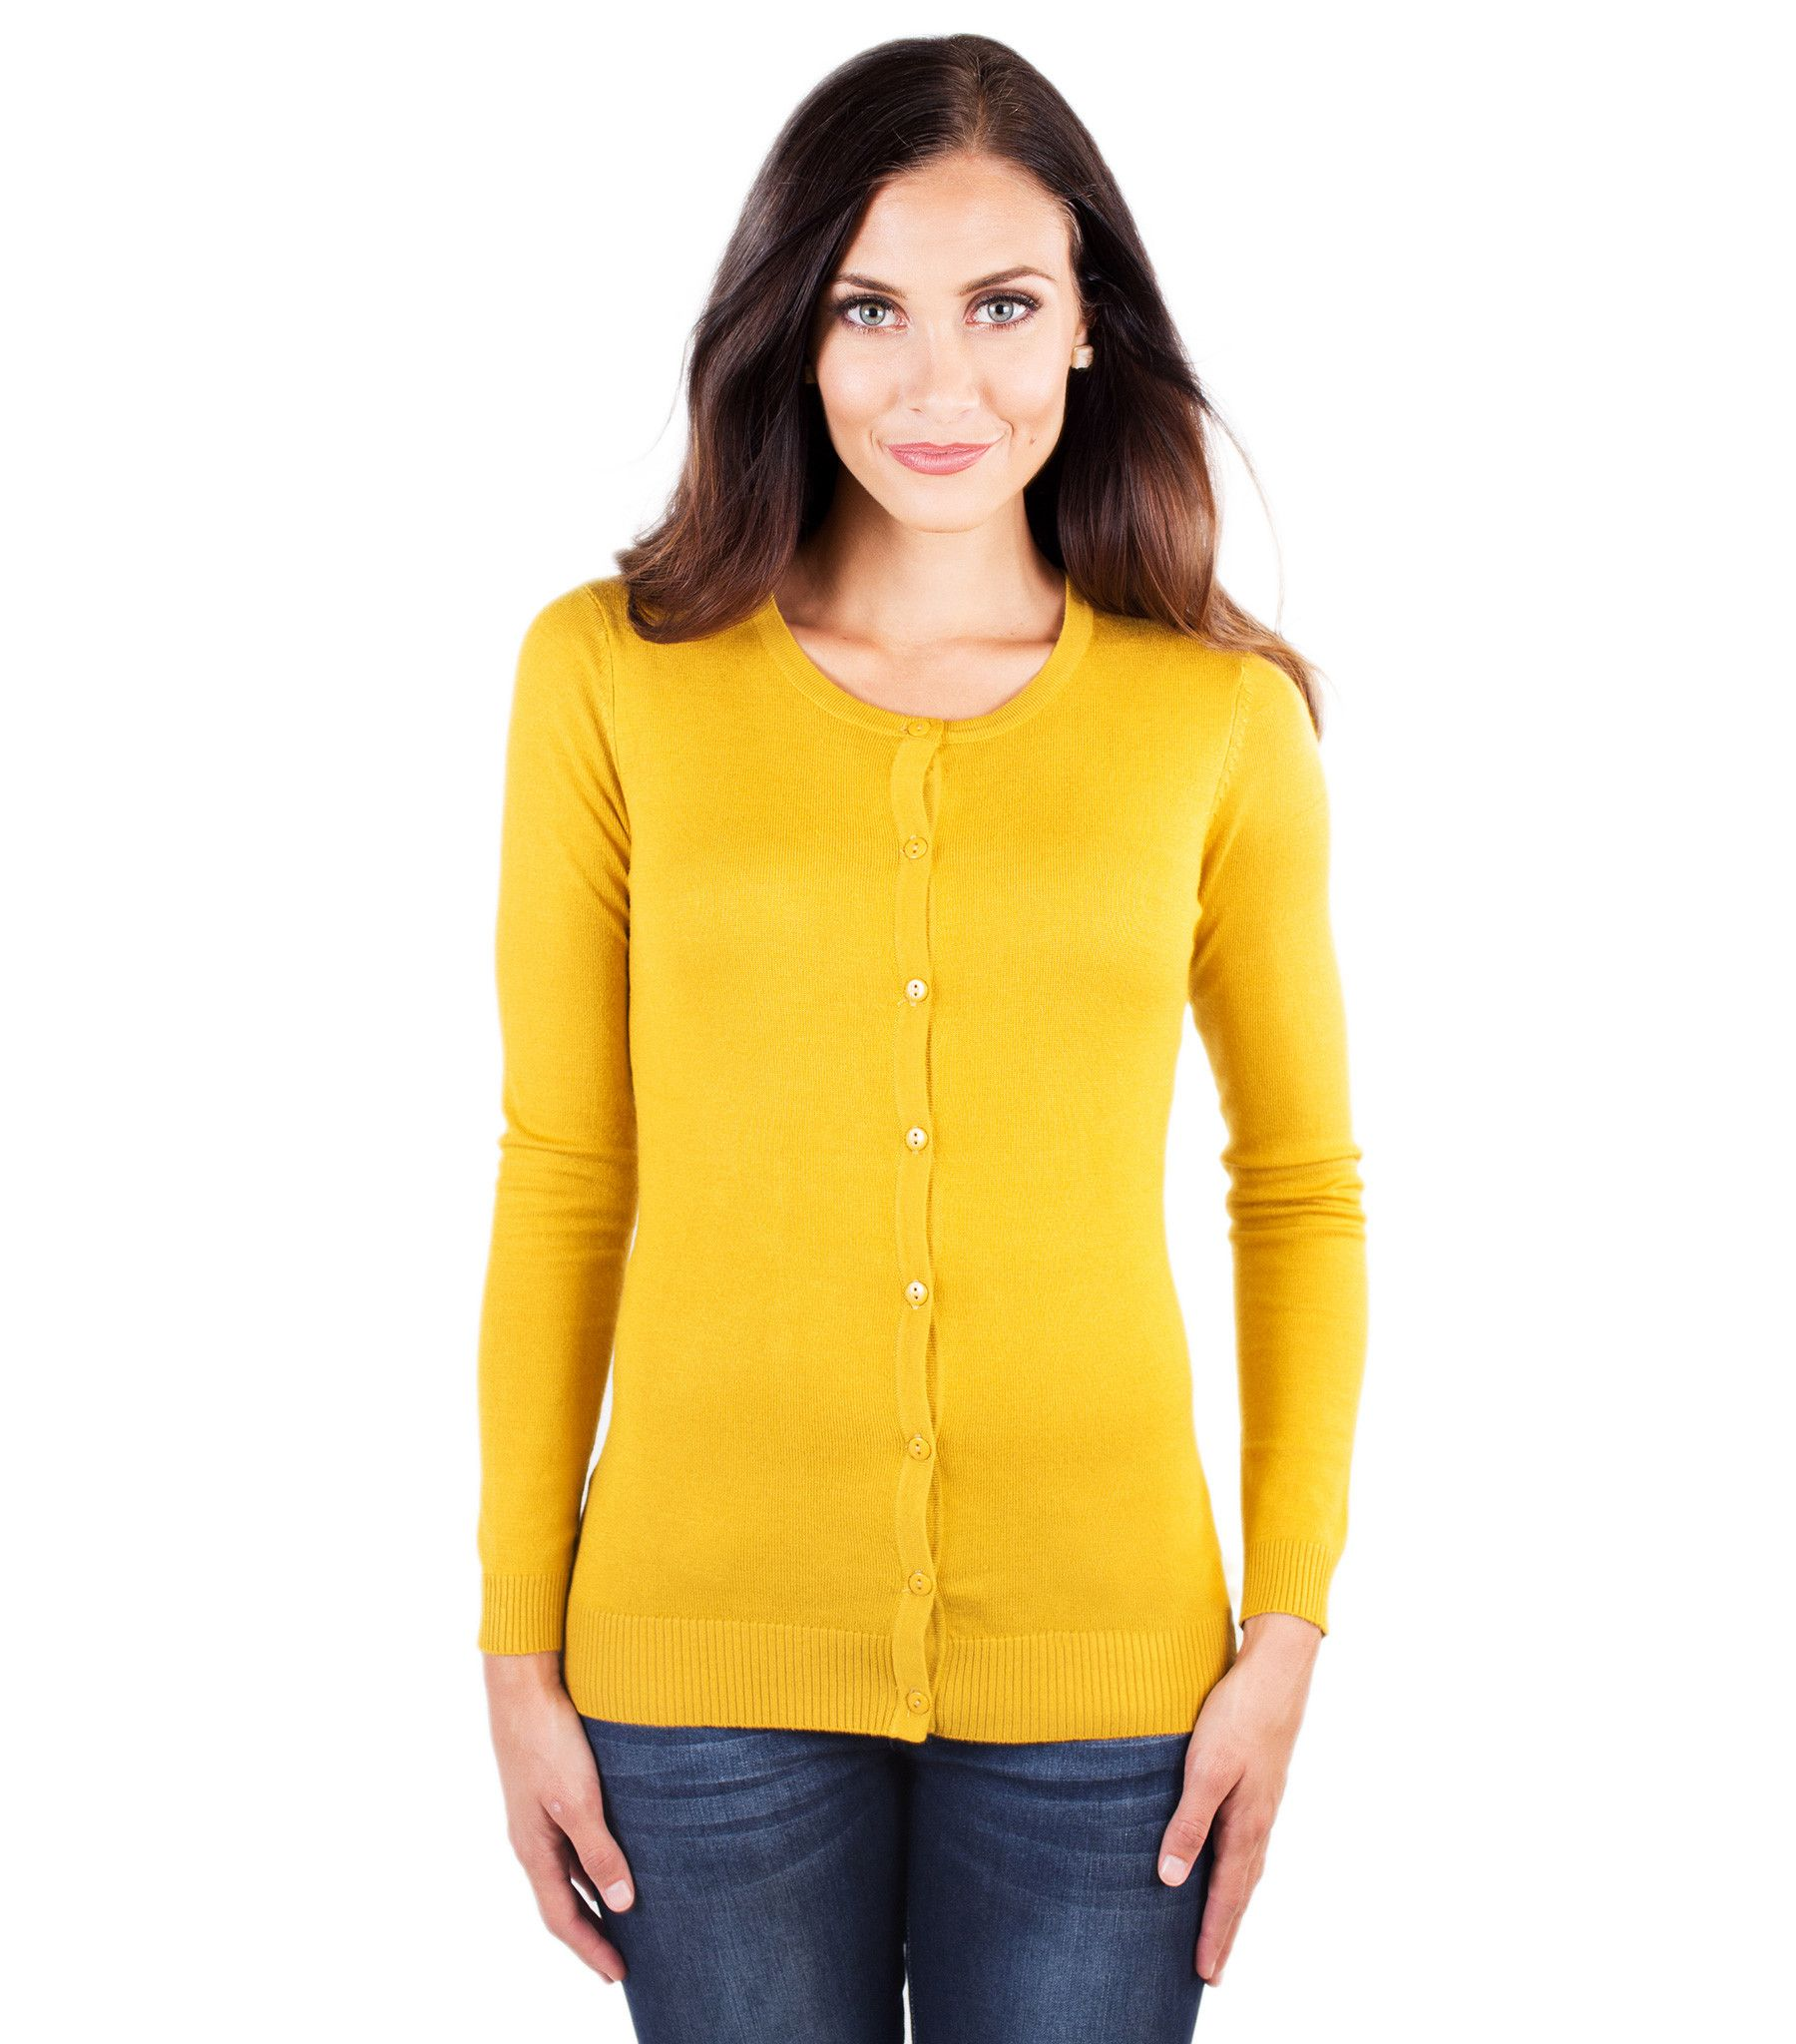 Mustard color crewneck cardigan Fashion, Tops, Style